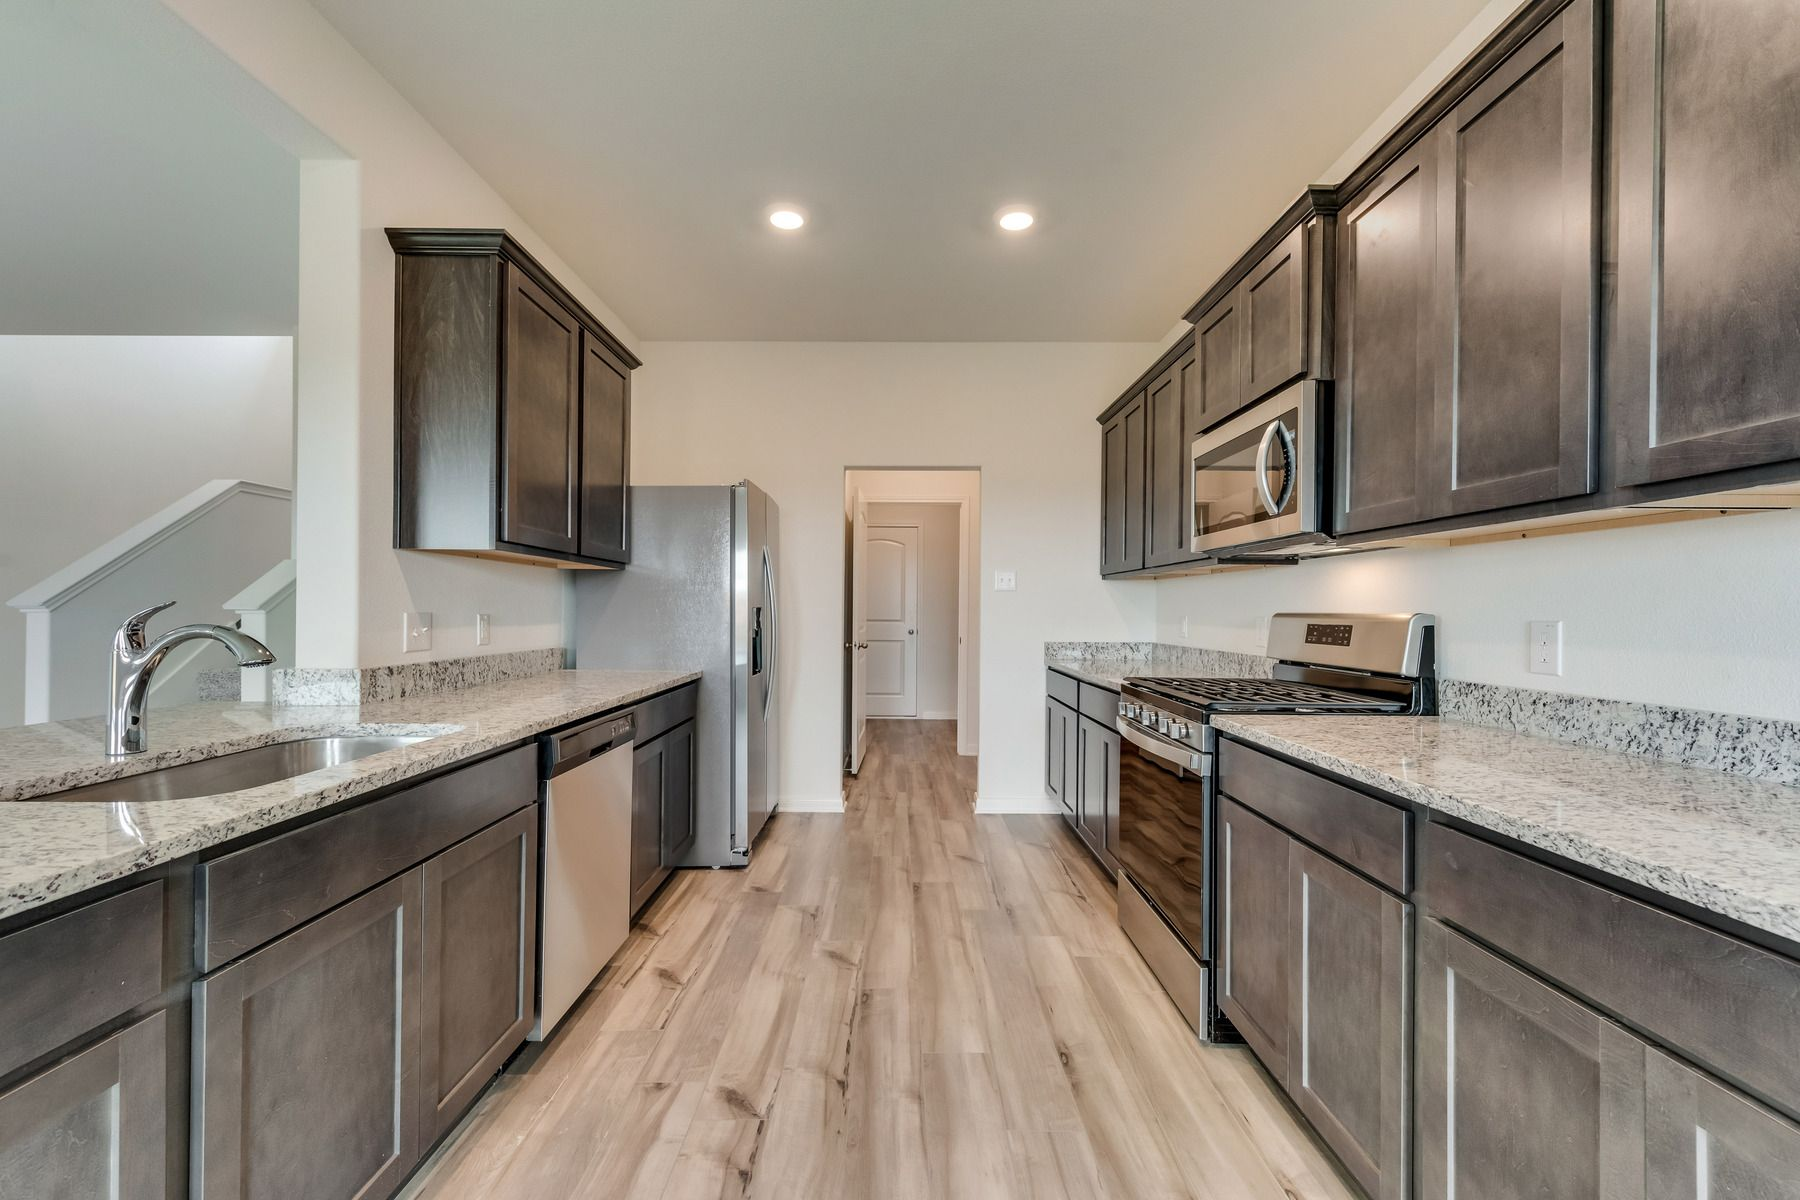 The Oakmont by LGI Homes:The kitchen comes with a full suite of energy-efficient appliances!